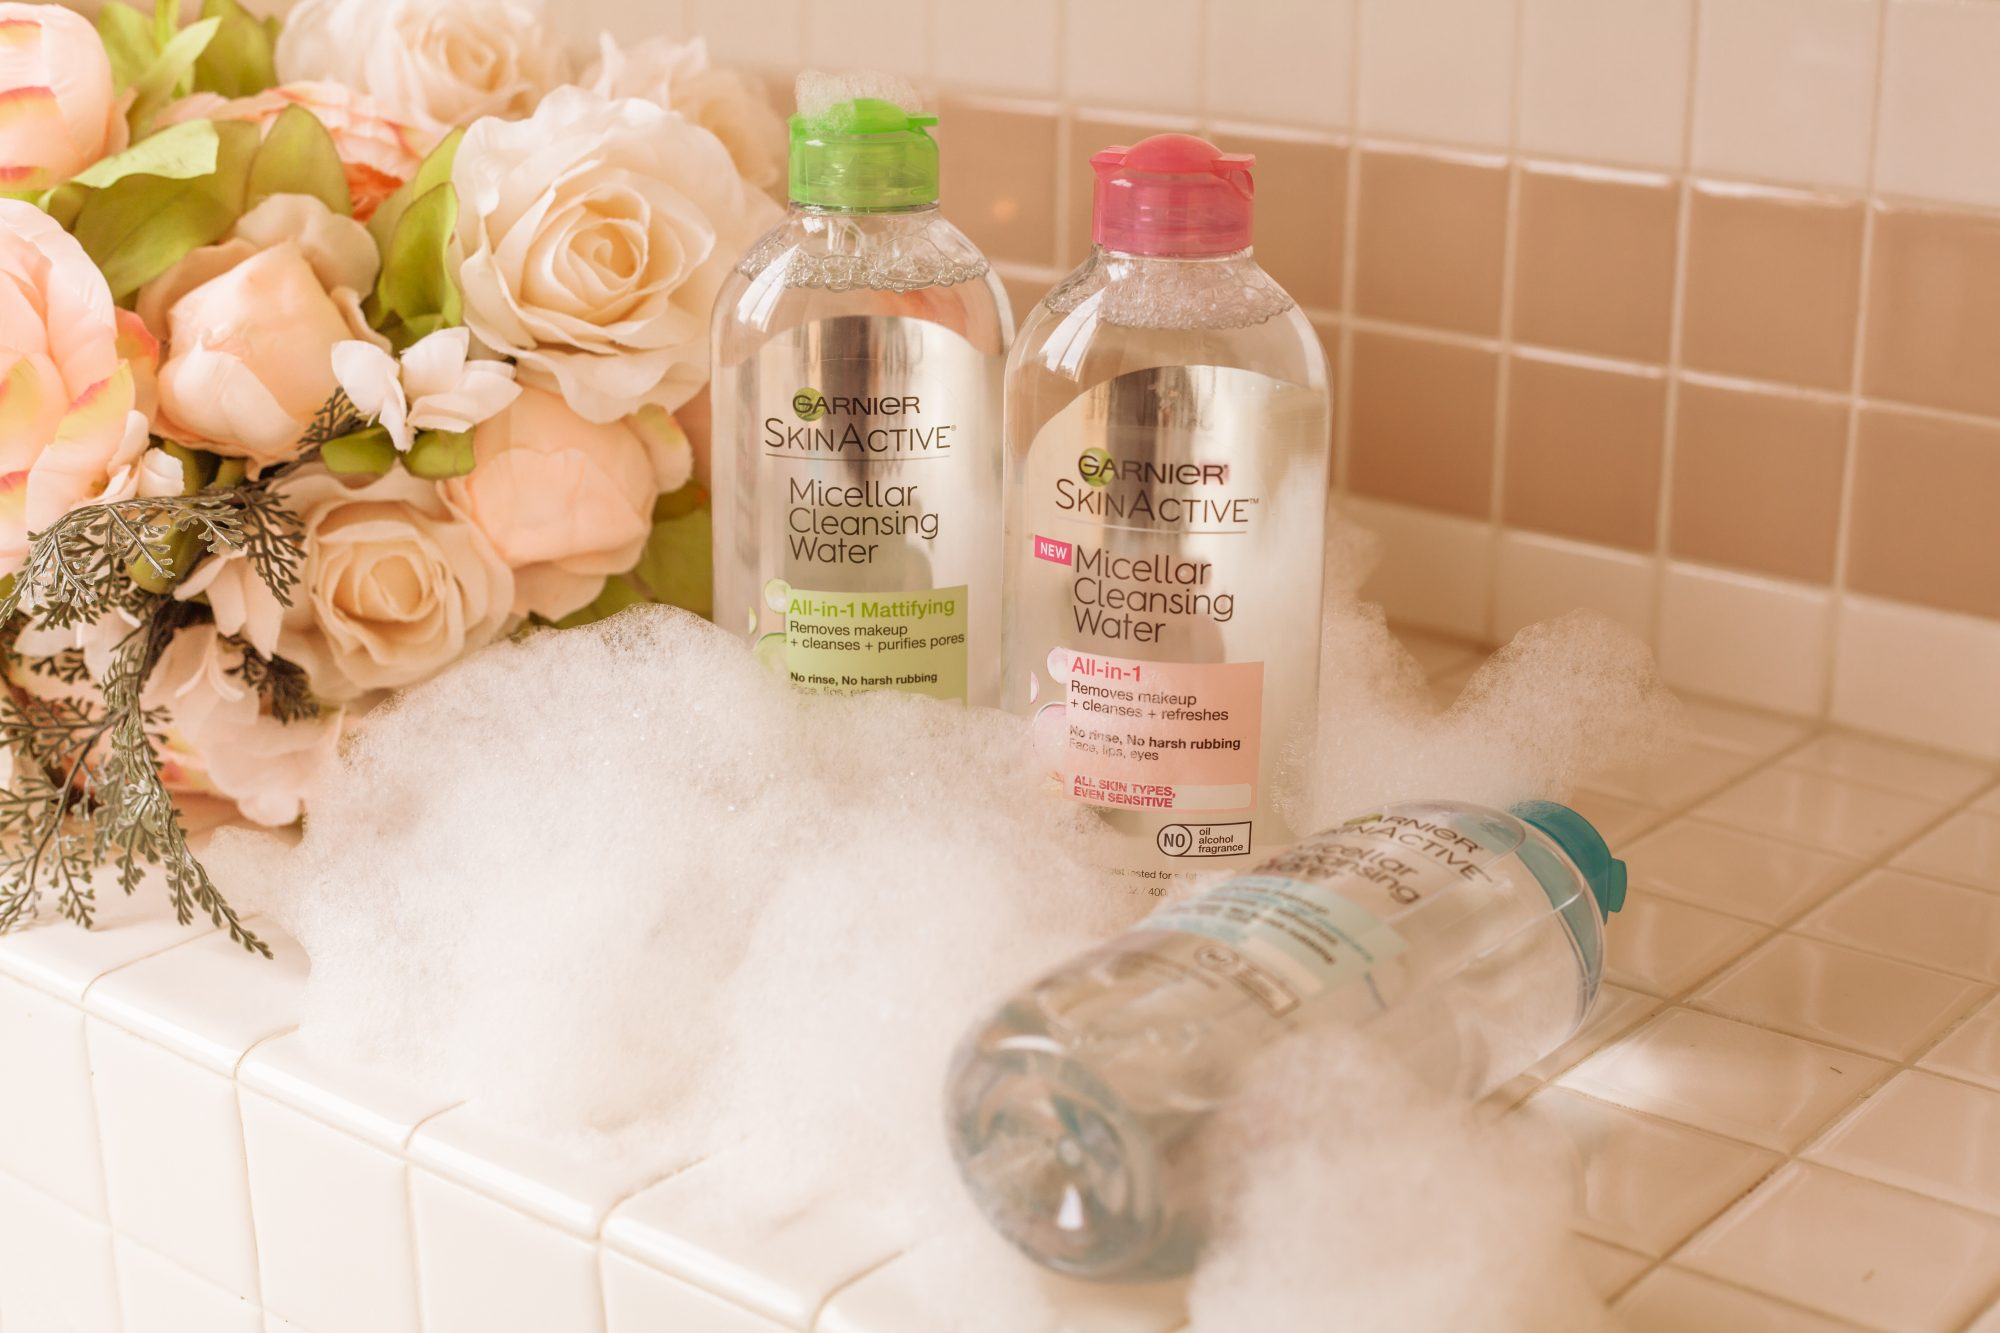 """Garnier's SkinActive Micellar Cleansing Water is an all-in-1 cleansing water that removes makeup, cleanses, and refreshes your skin. It's not an oil-based cleanser, although the formula consists of tiny """"micelles"""" - tiny balls of cleansing oil molecules- that are suspended in soft water, so you get the effectiveness of a cleansing oil with the consistency of water. It's perfect for people like me whose skin is extremely reactive to oil-based cleansers, so we can still have our cake and eat it too! - www.theballeronabudget.com"""